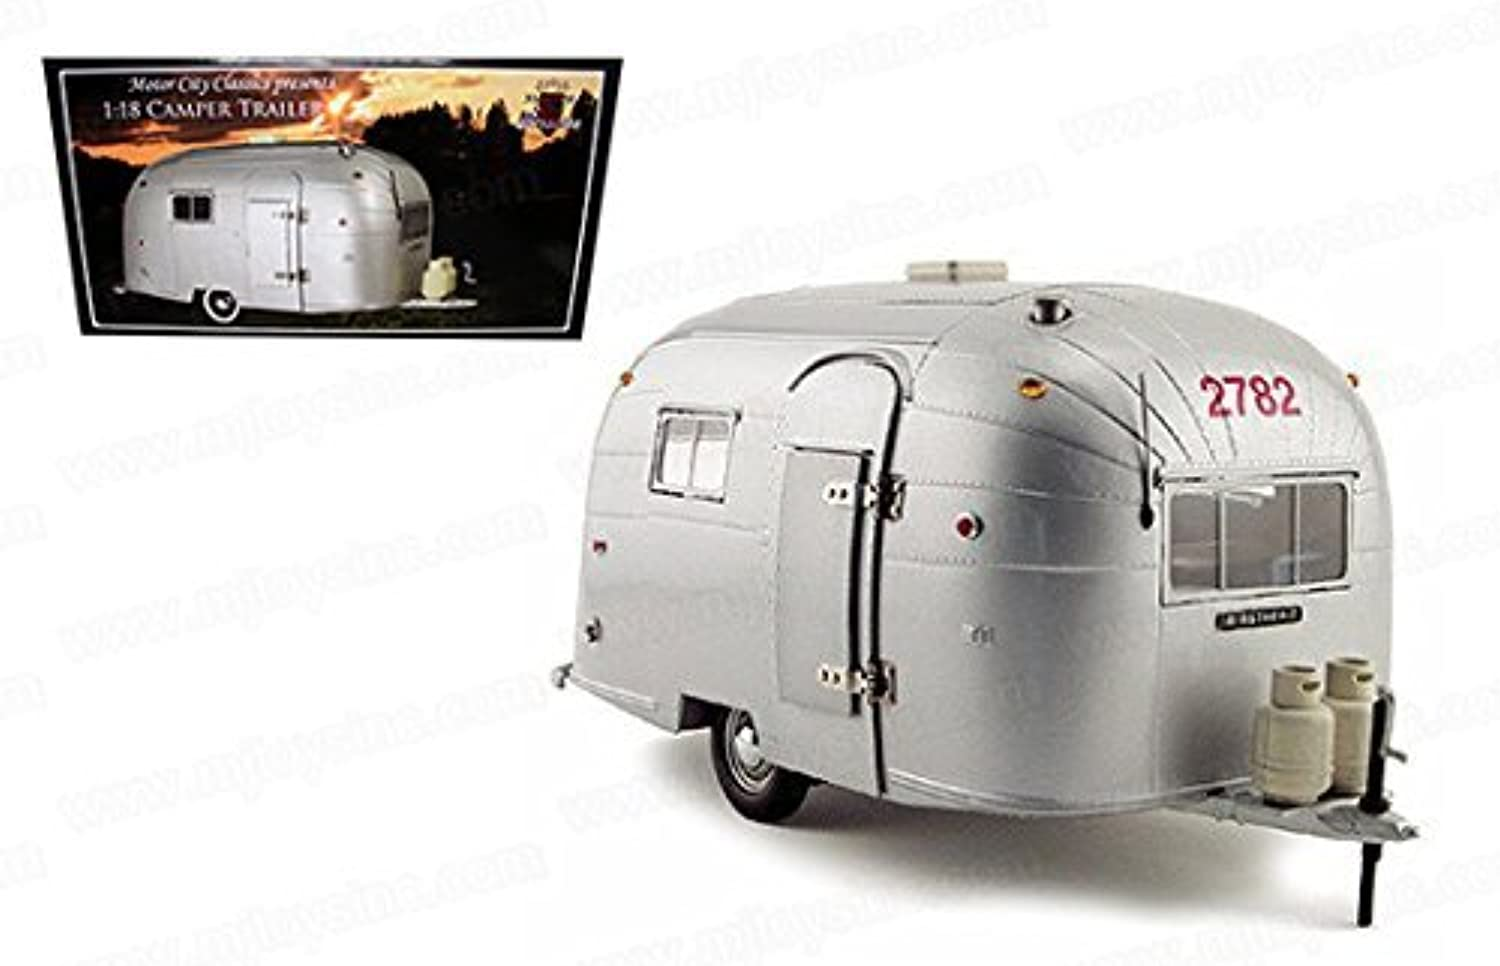 MOTOR CITY CLASSICS 1 18 AIRSTREAM ALUMINUM CAMPER TRAILER  Prime shipping by MOTOR CITY